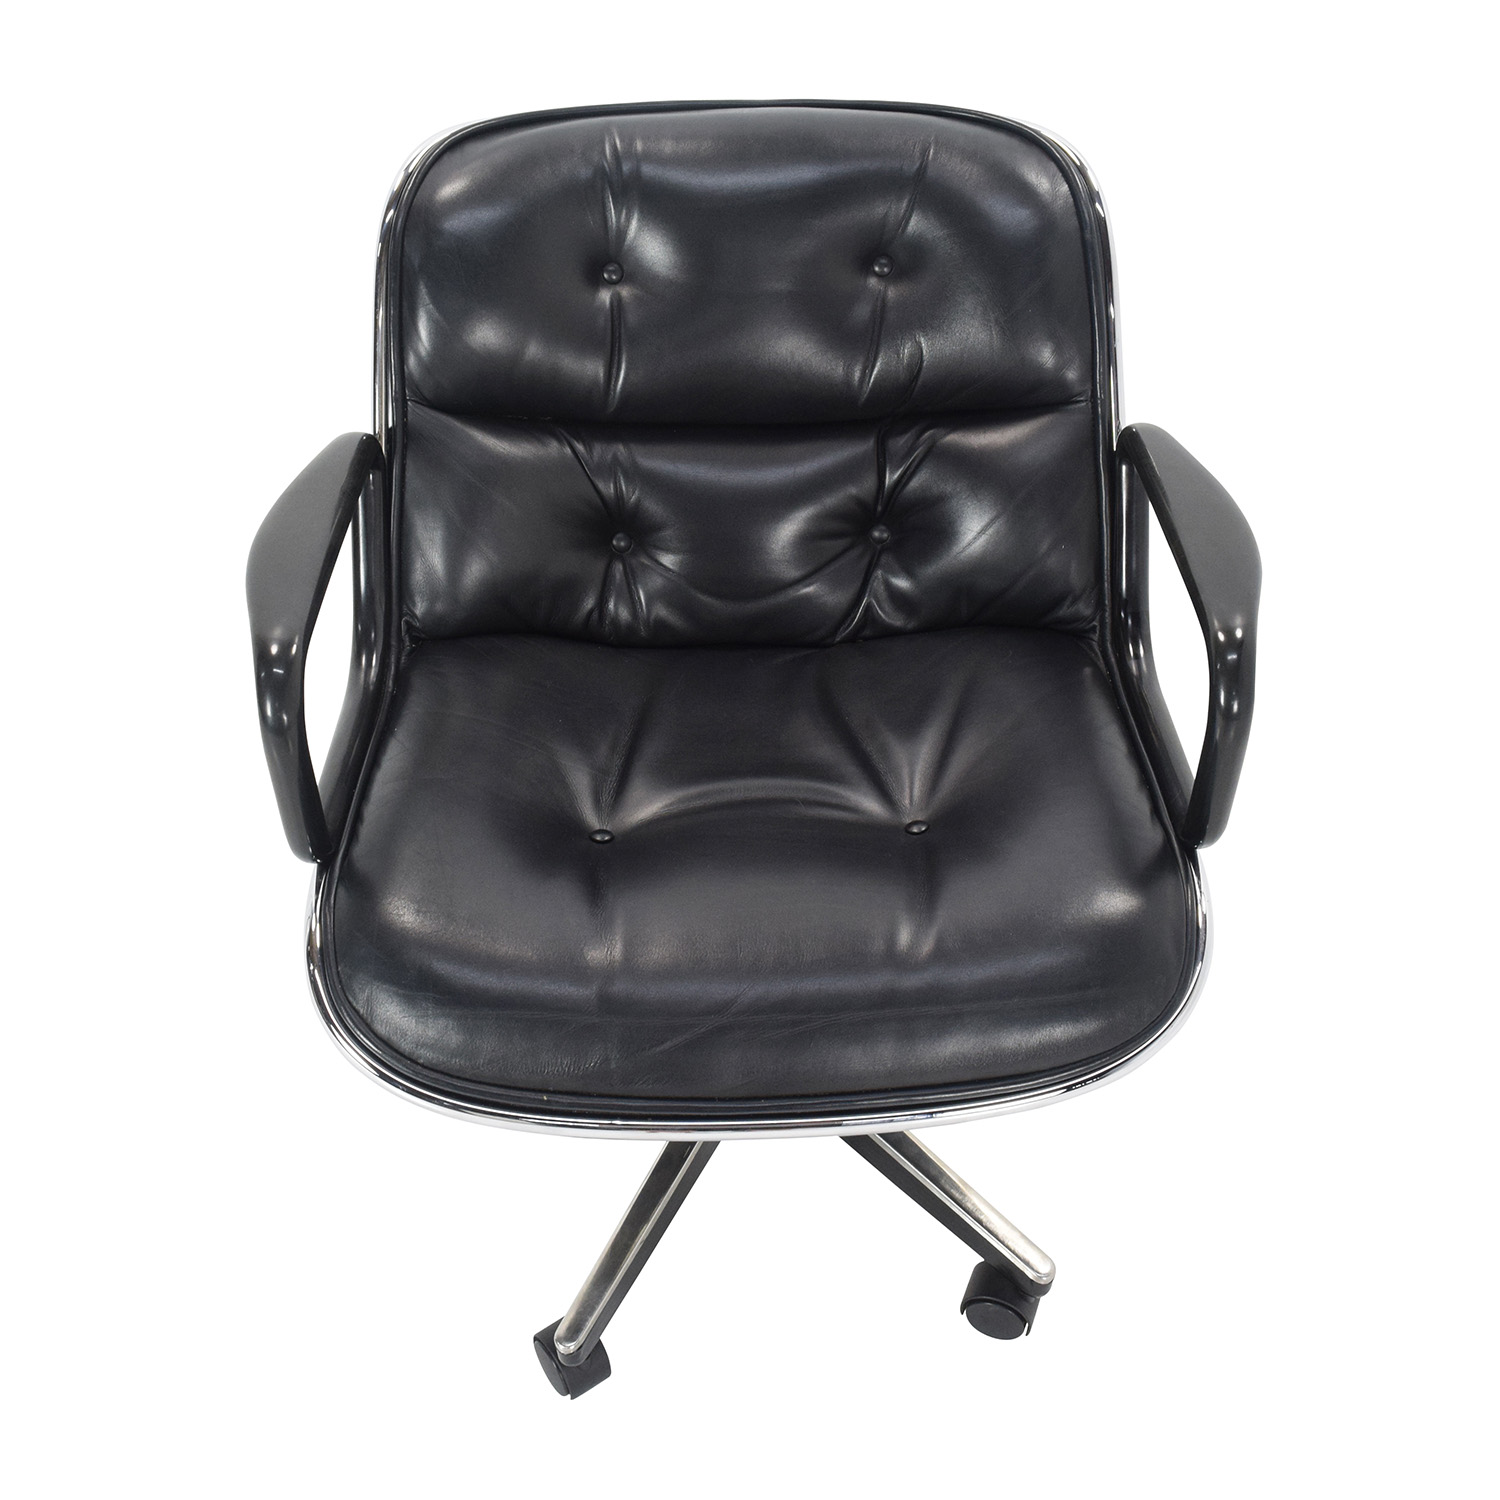 Deluxe Boardroom Chair coupon